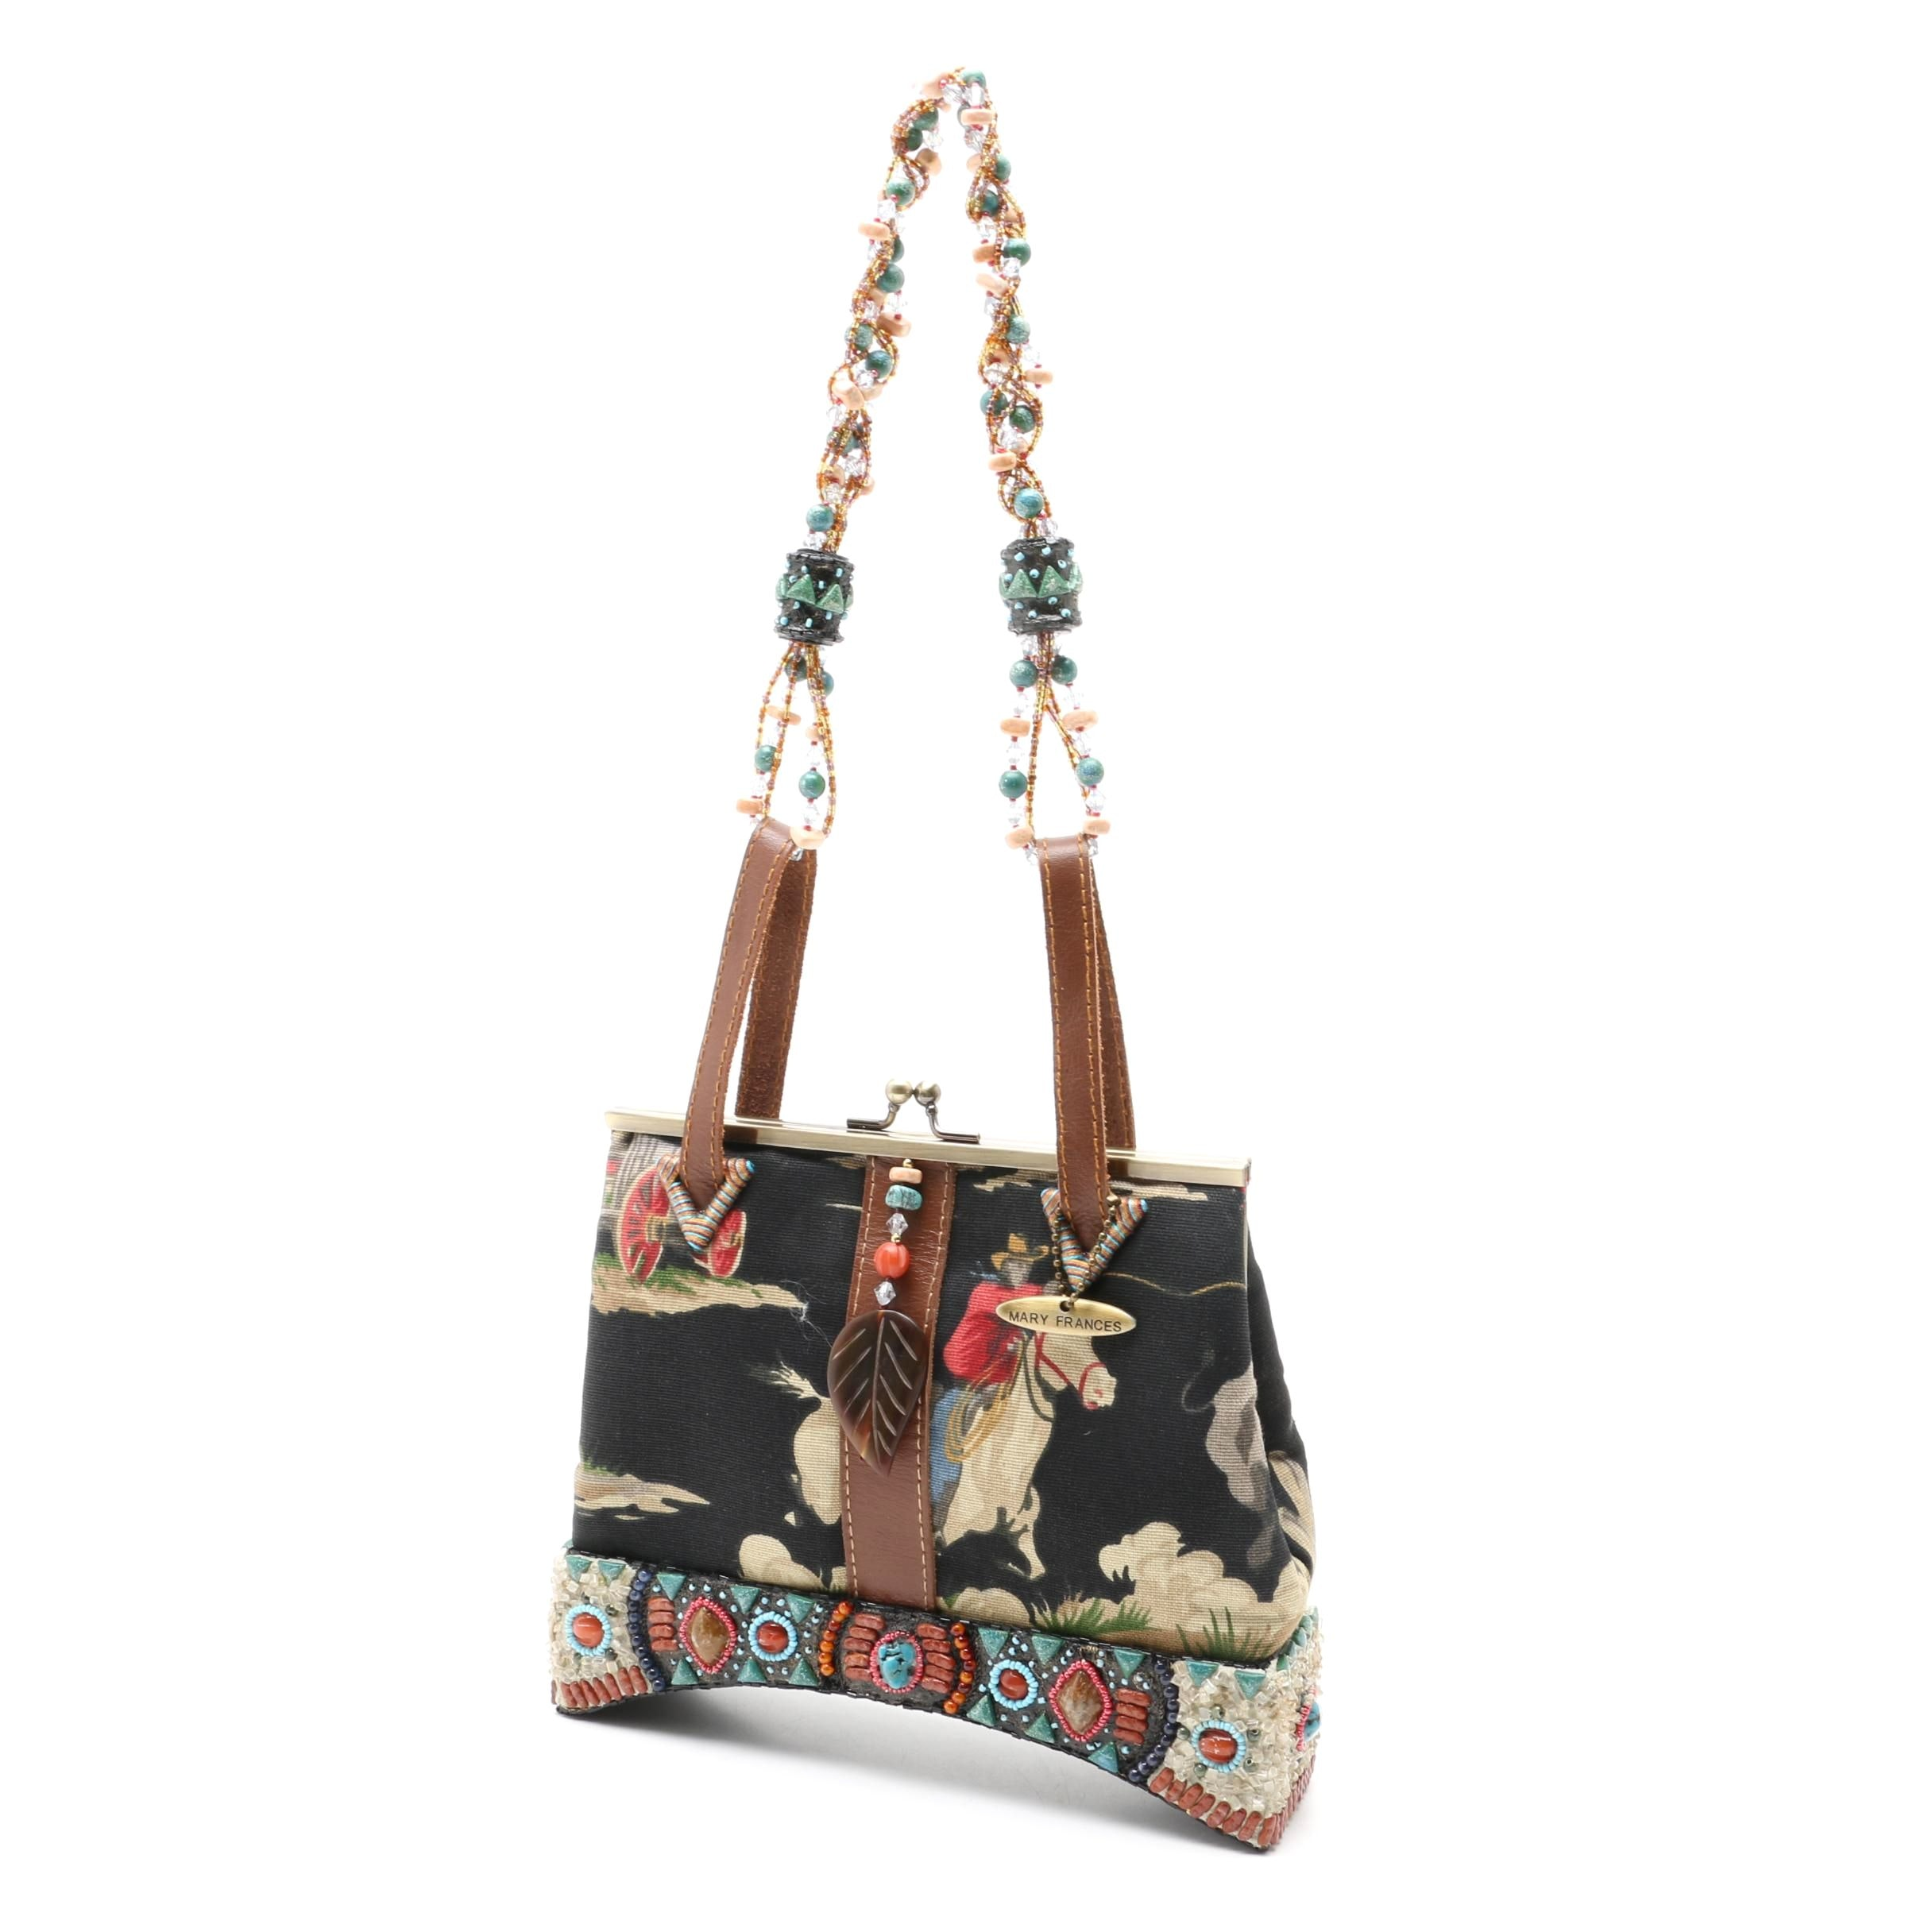 Mary Frances of San Francisco Cowboy Themed Embellished Handbag